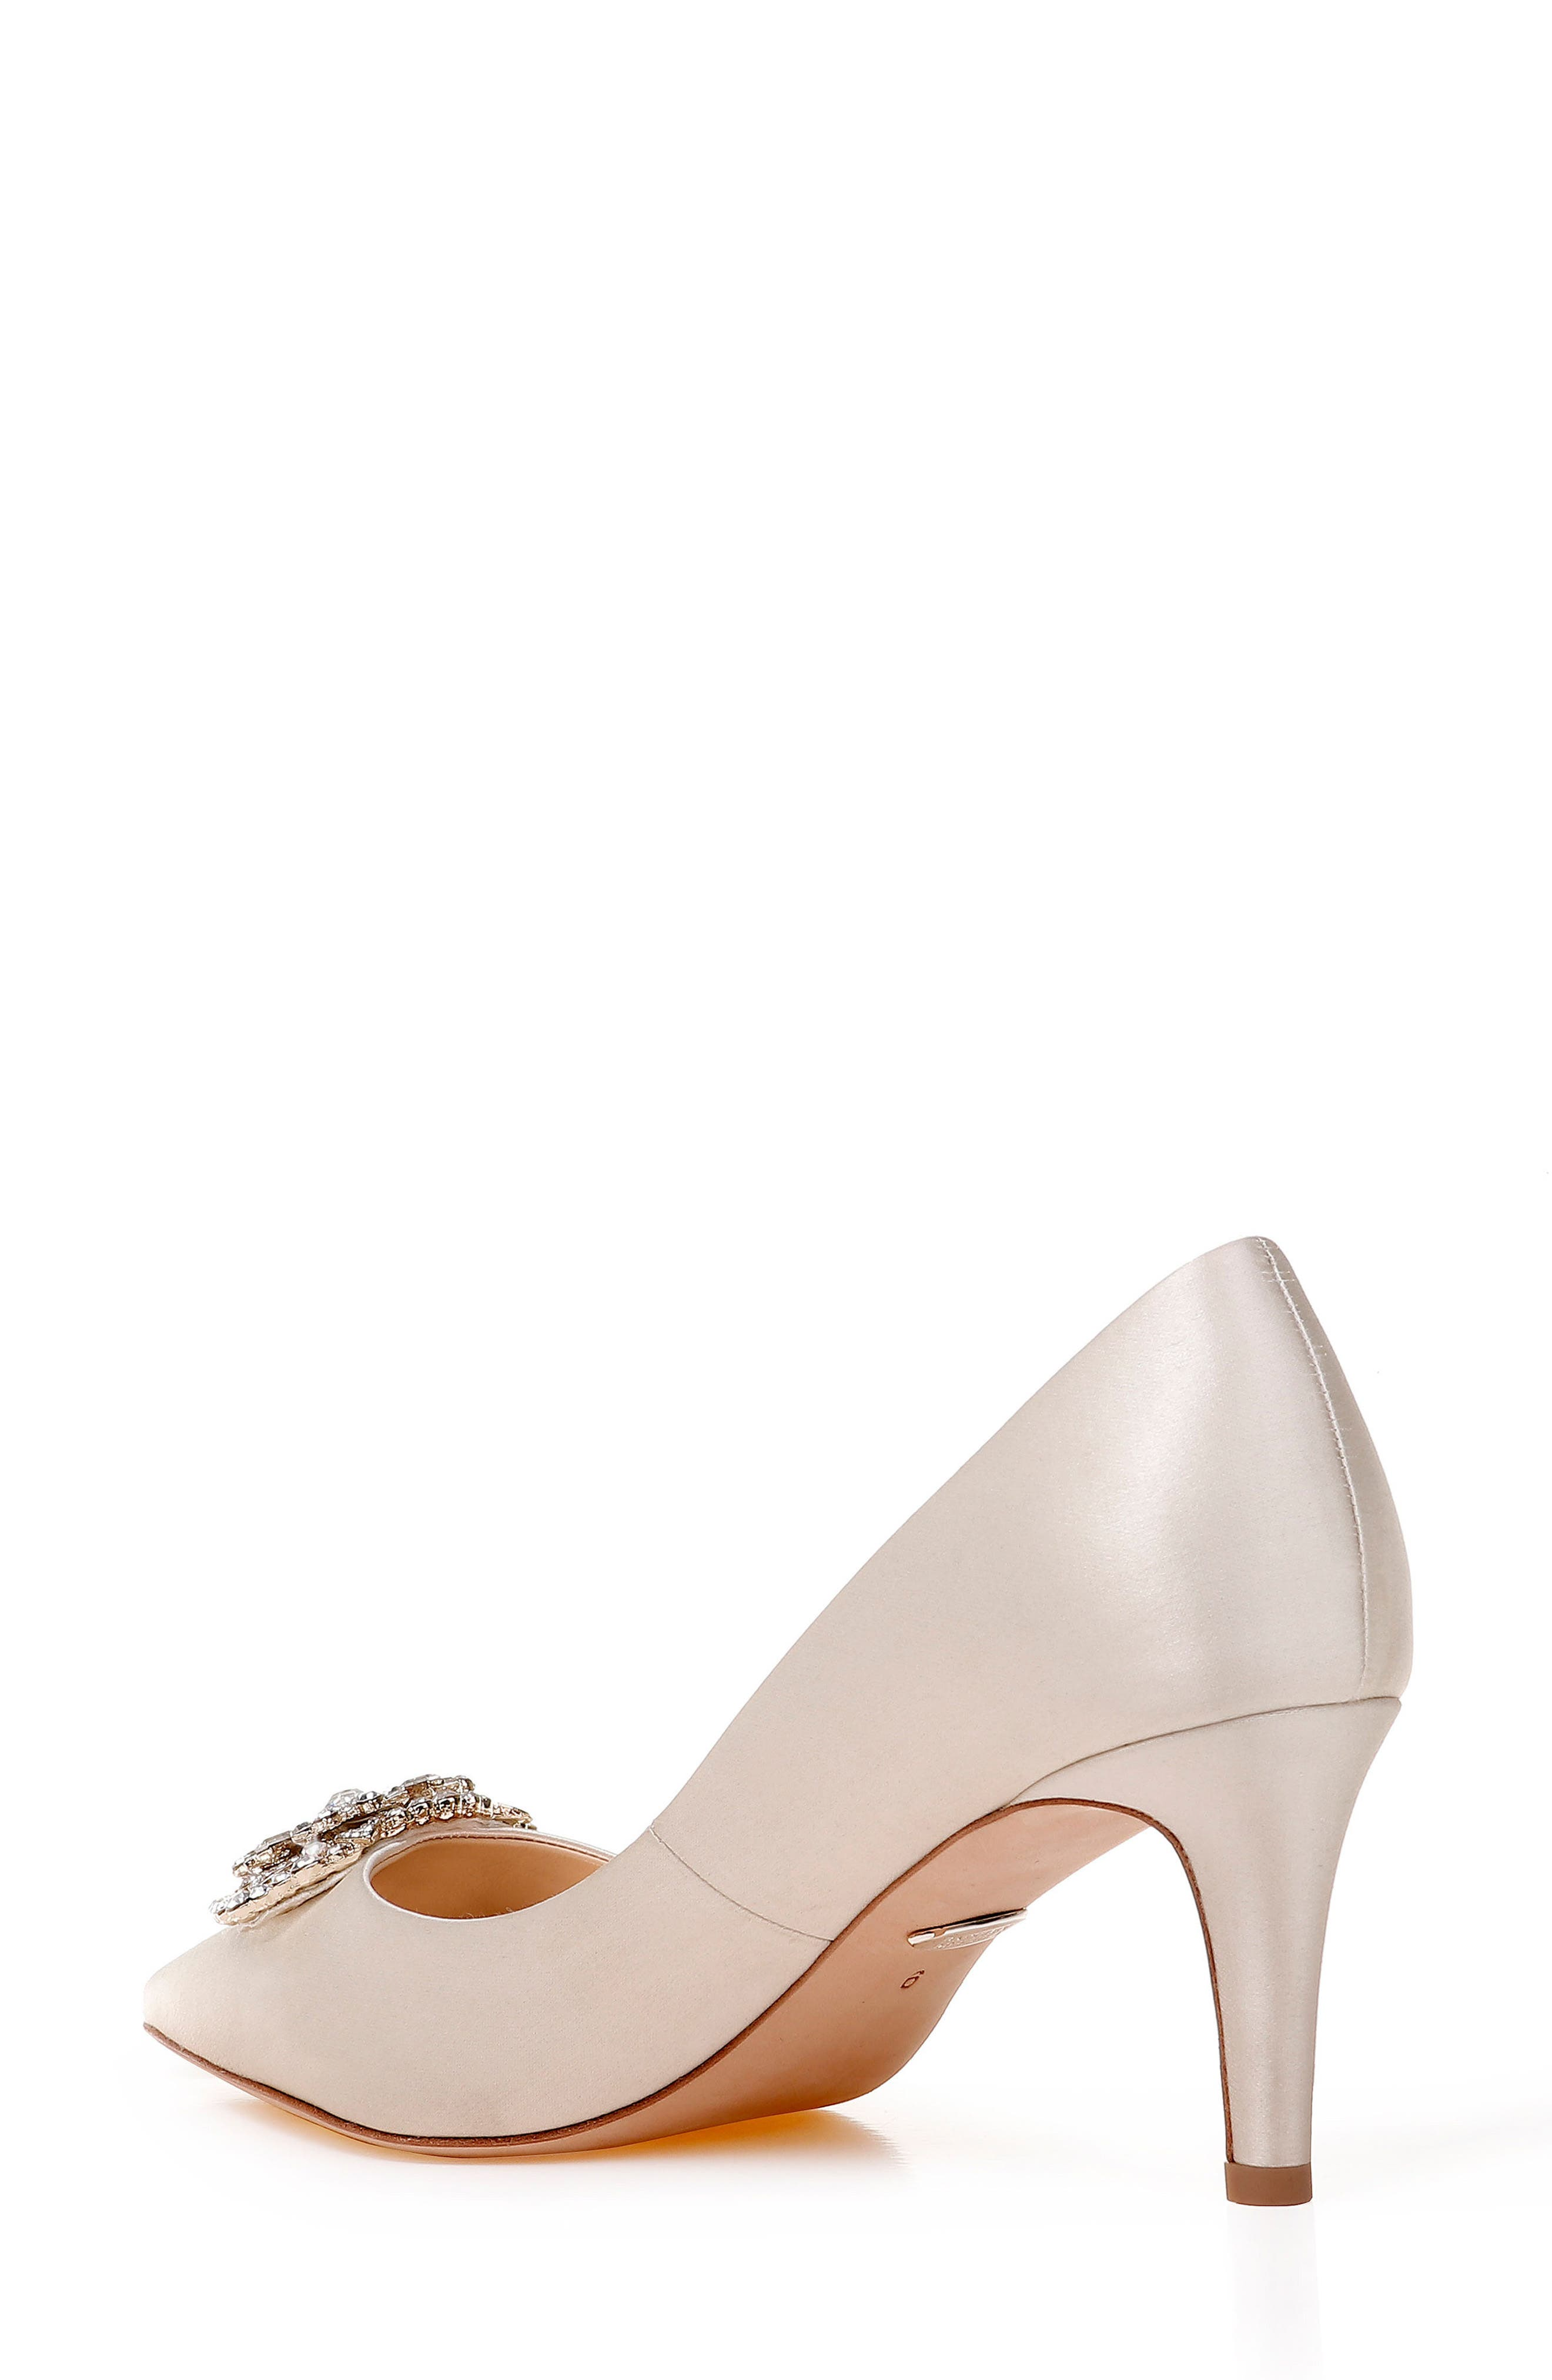 Sunshine Embellished Pump,                             Alternate thumbnail 2, color,                             IVORY SATIN